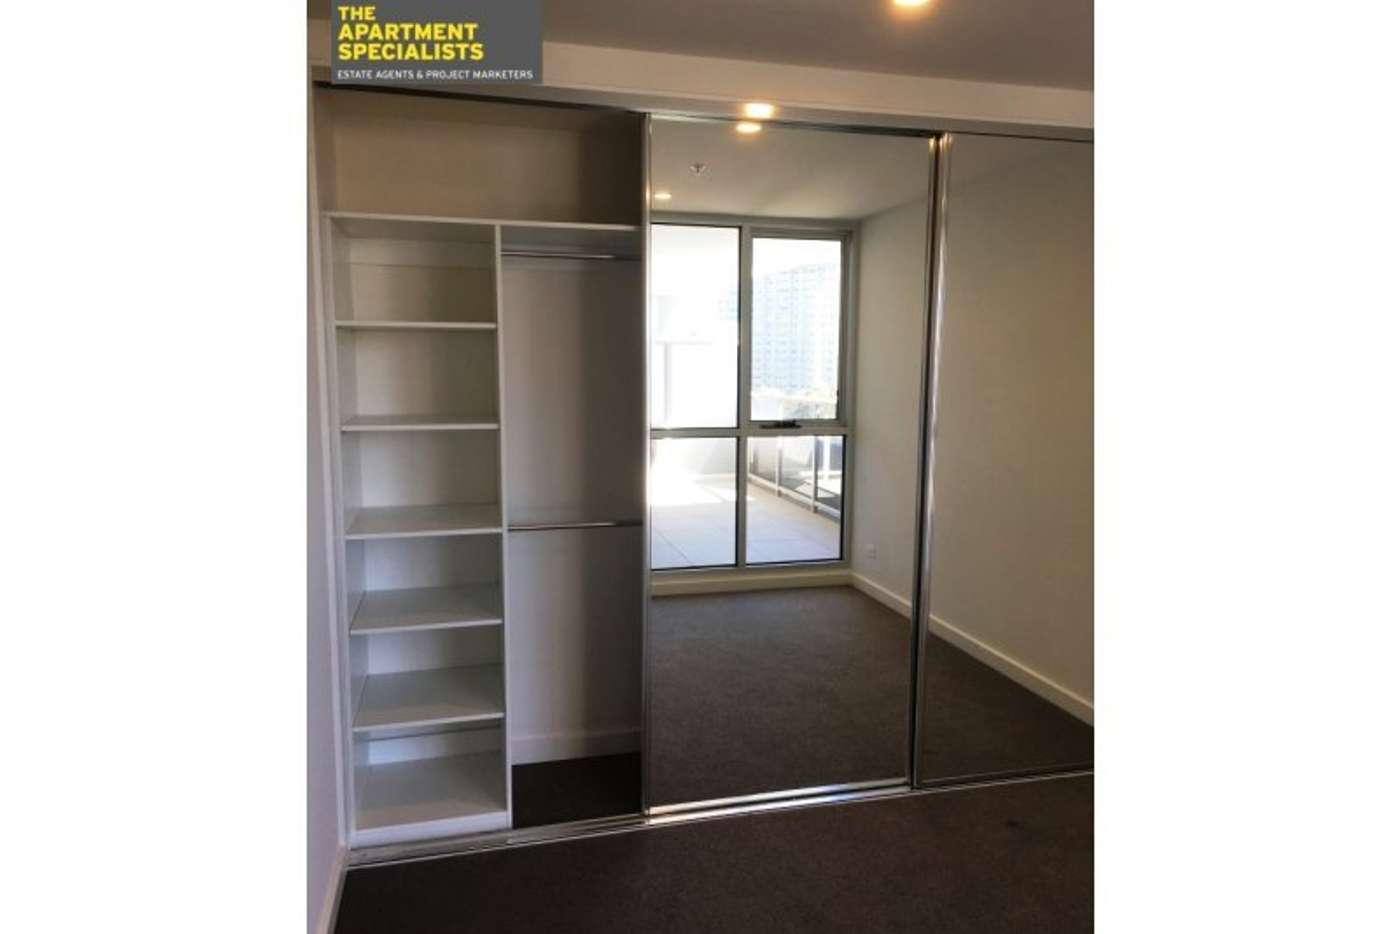 Sixth view of Homely apartment listing, 801/33 Racecourse Road, North Melbourne VIC 3051